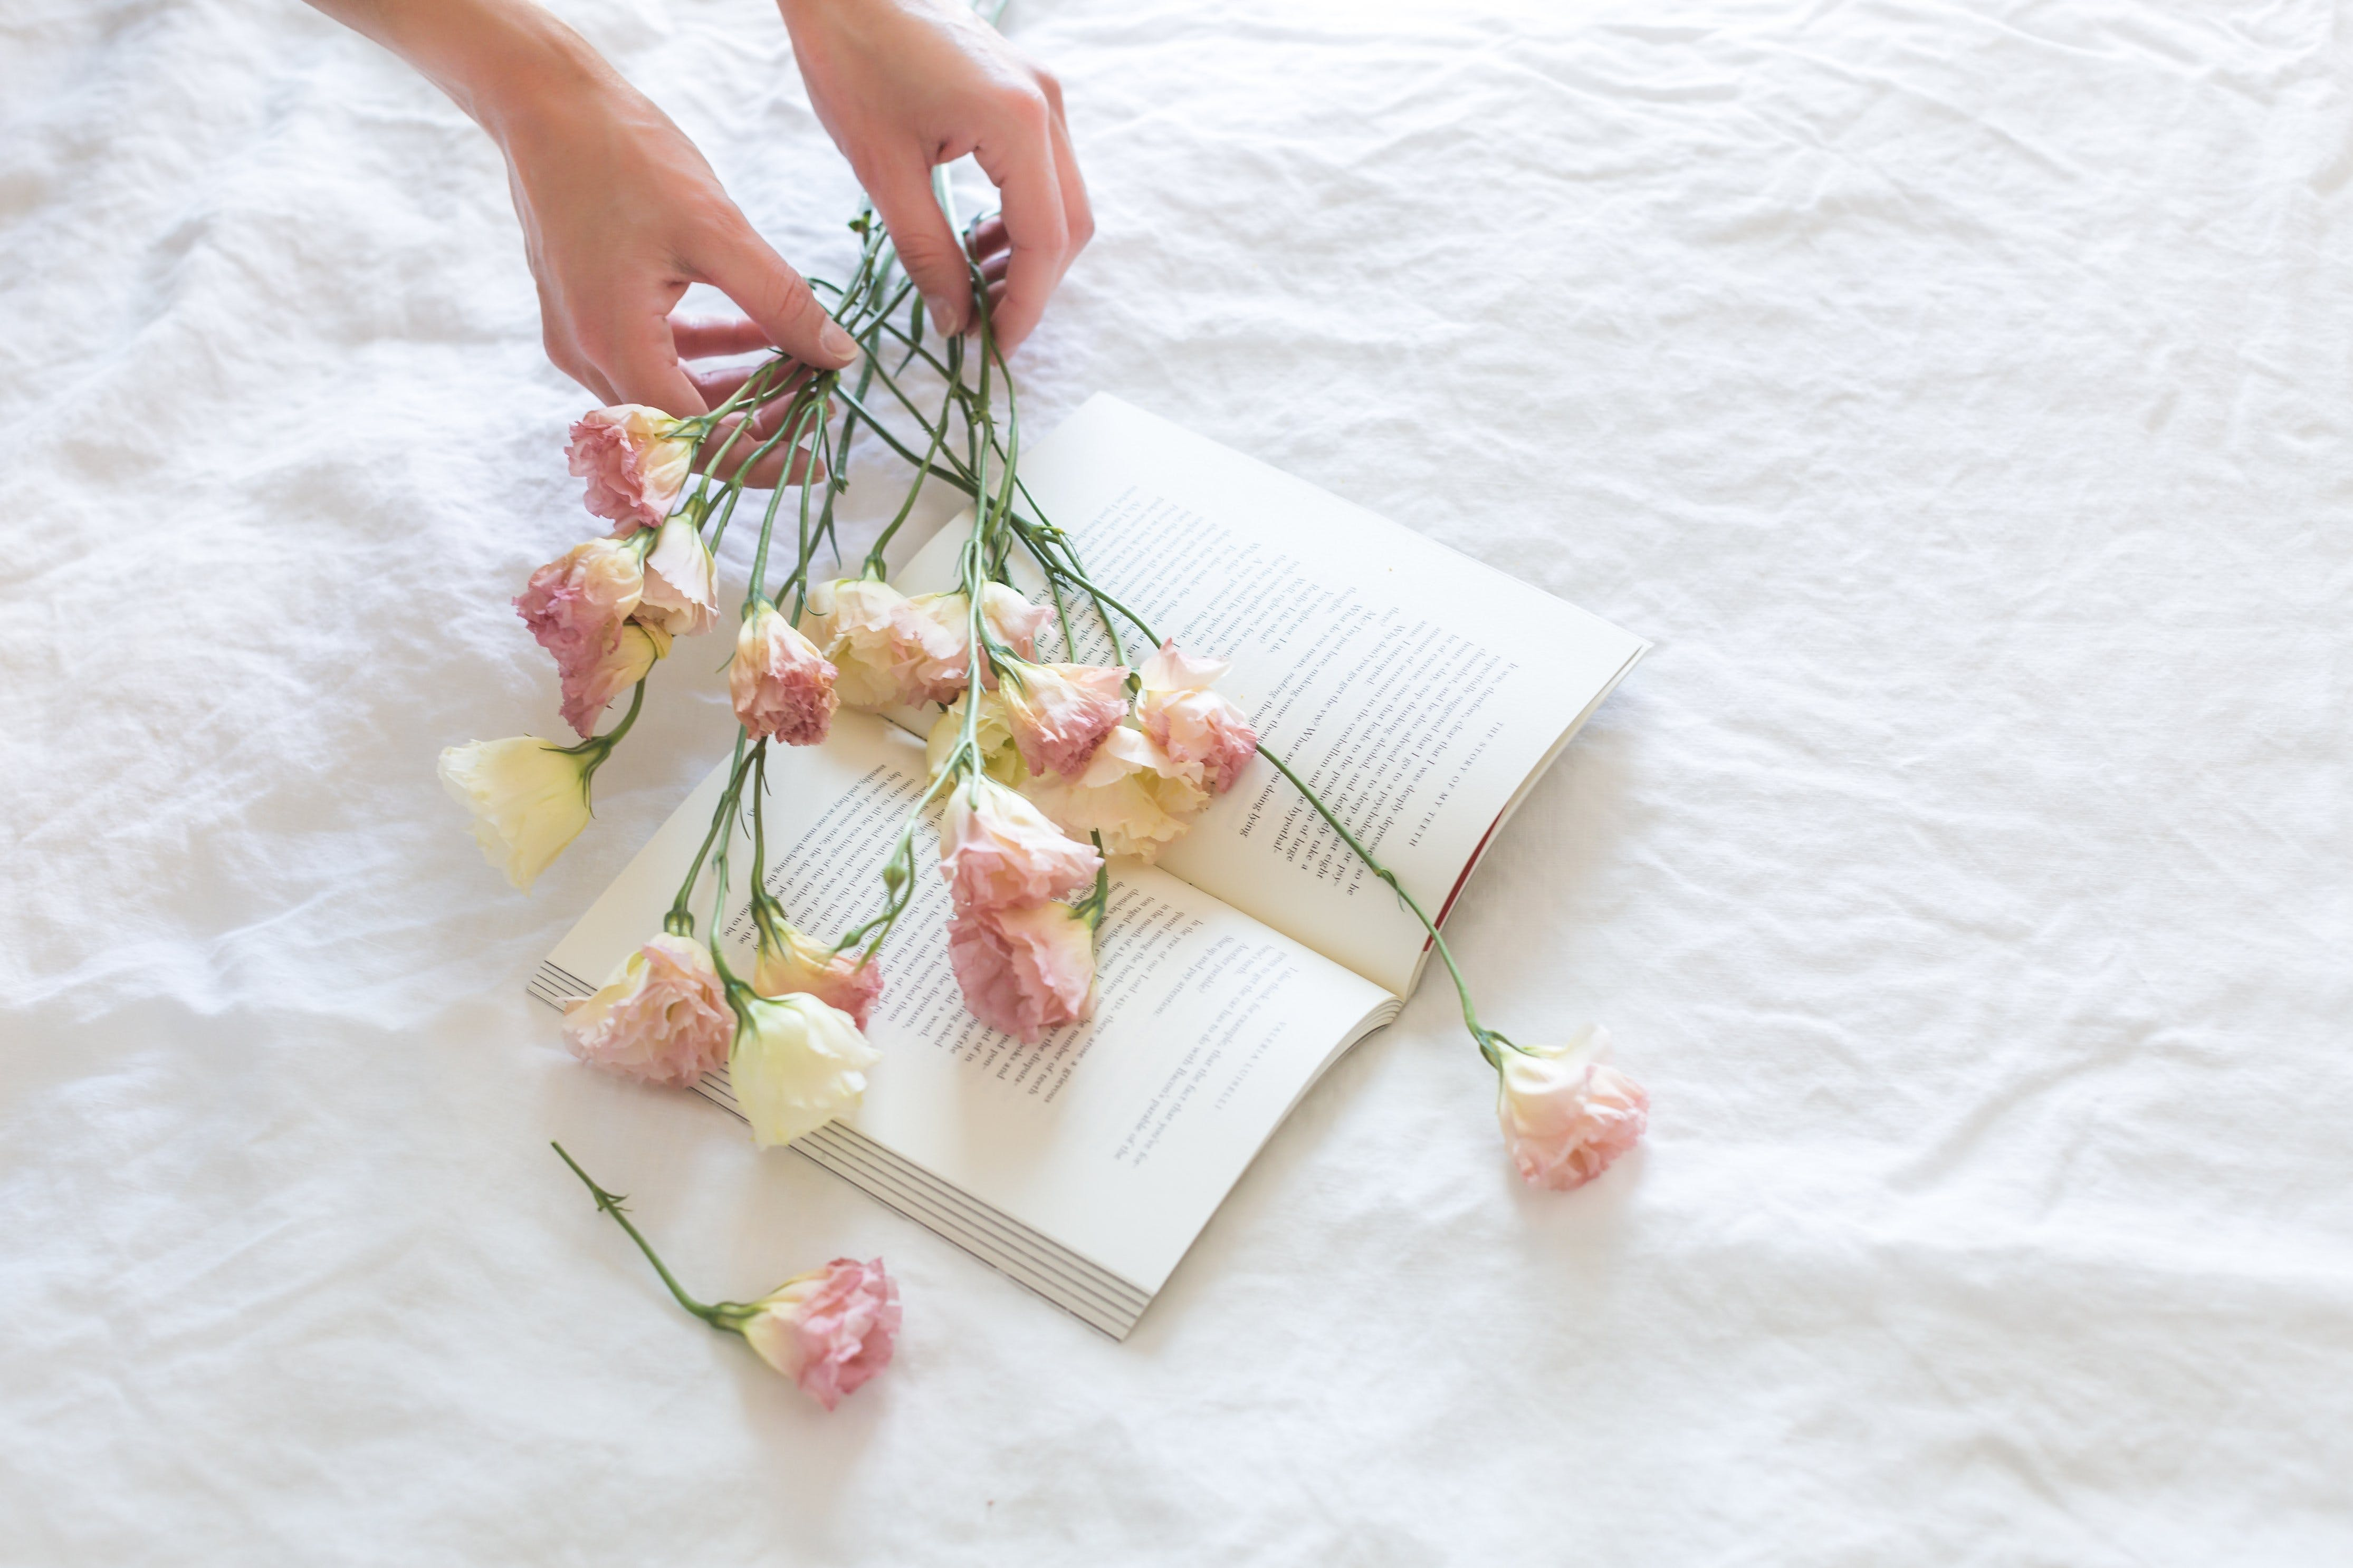 Pink-and-white Rose Flowers on White Printer Book